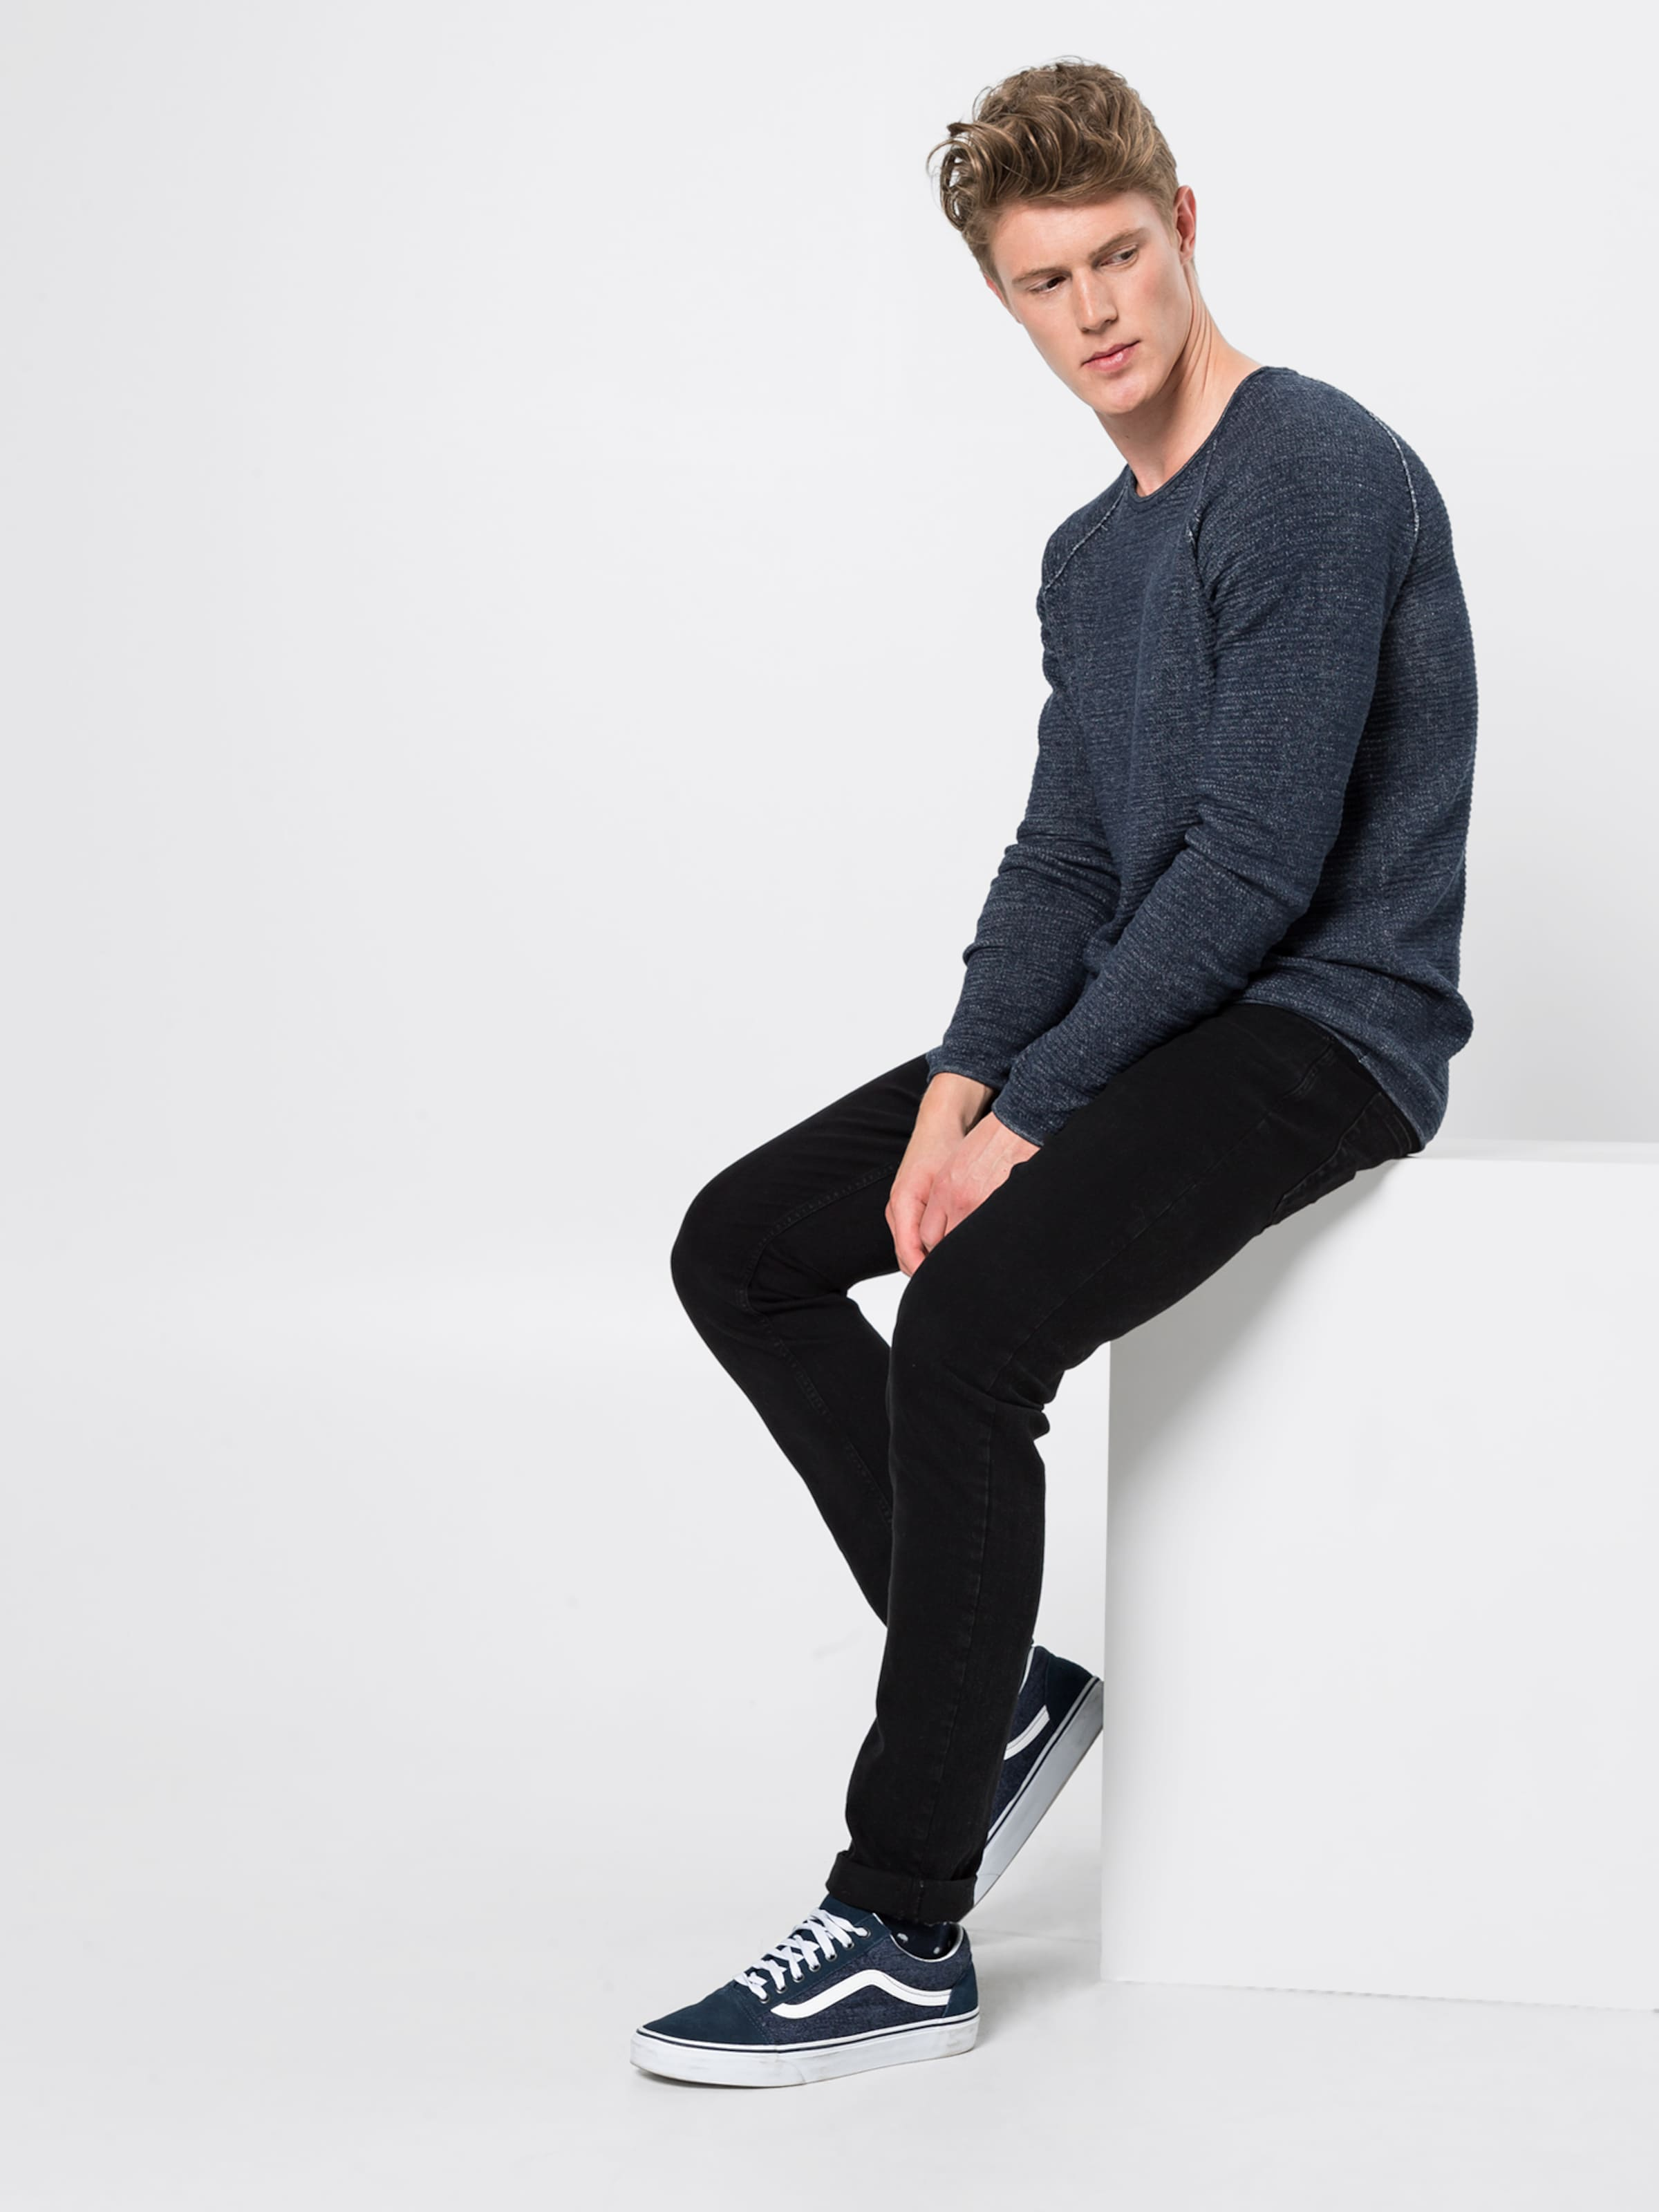 Trui Navy Review In 'cn 2tone' uJcF1TlK3